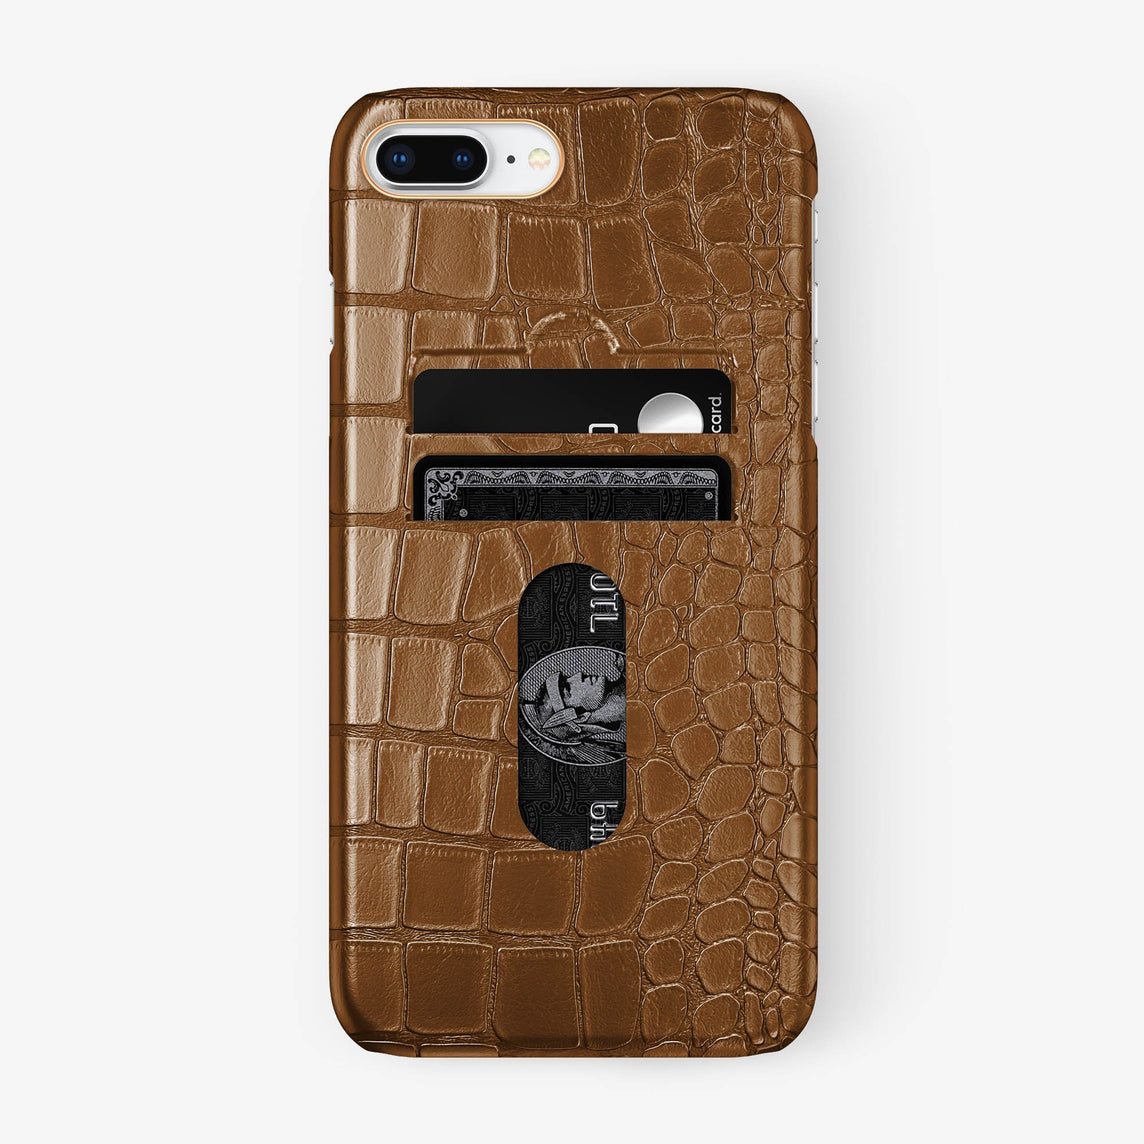 Alligator Card Holder Case iPhone 7/8 Plus | Cognac - Rose Gold